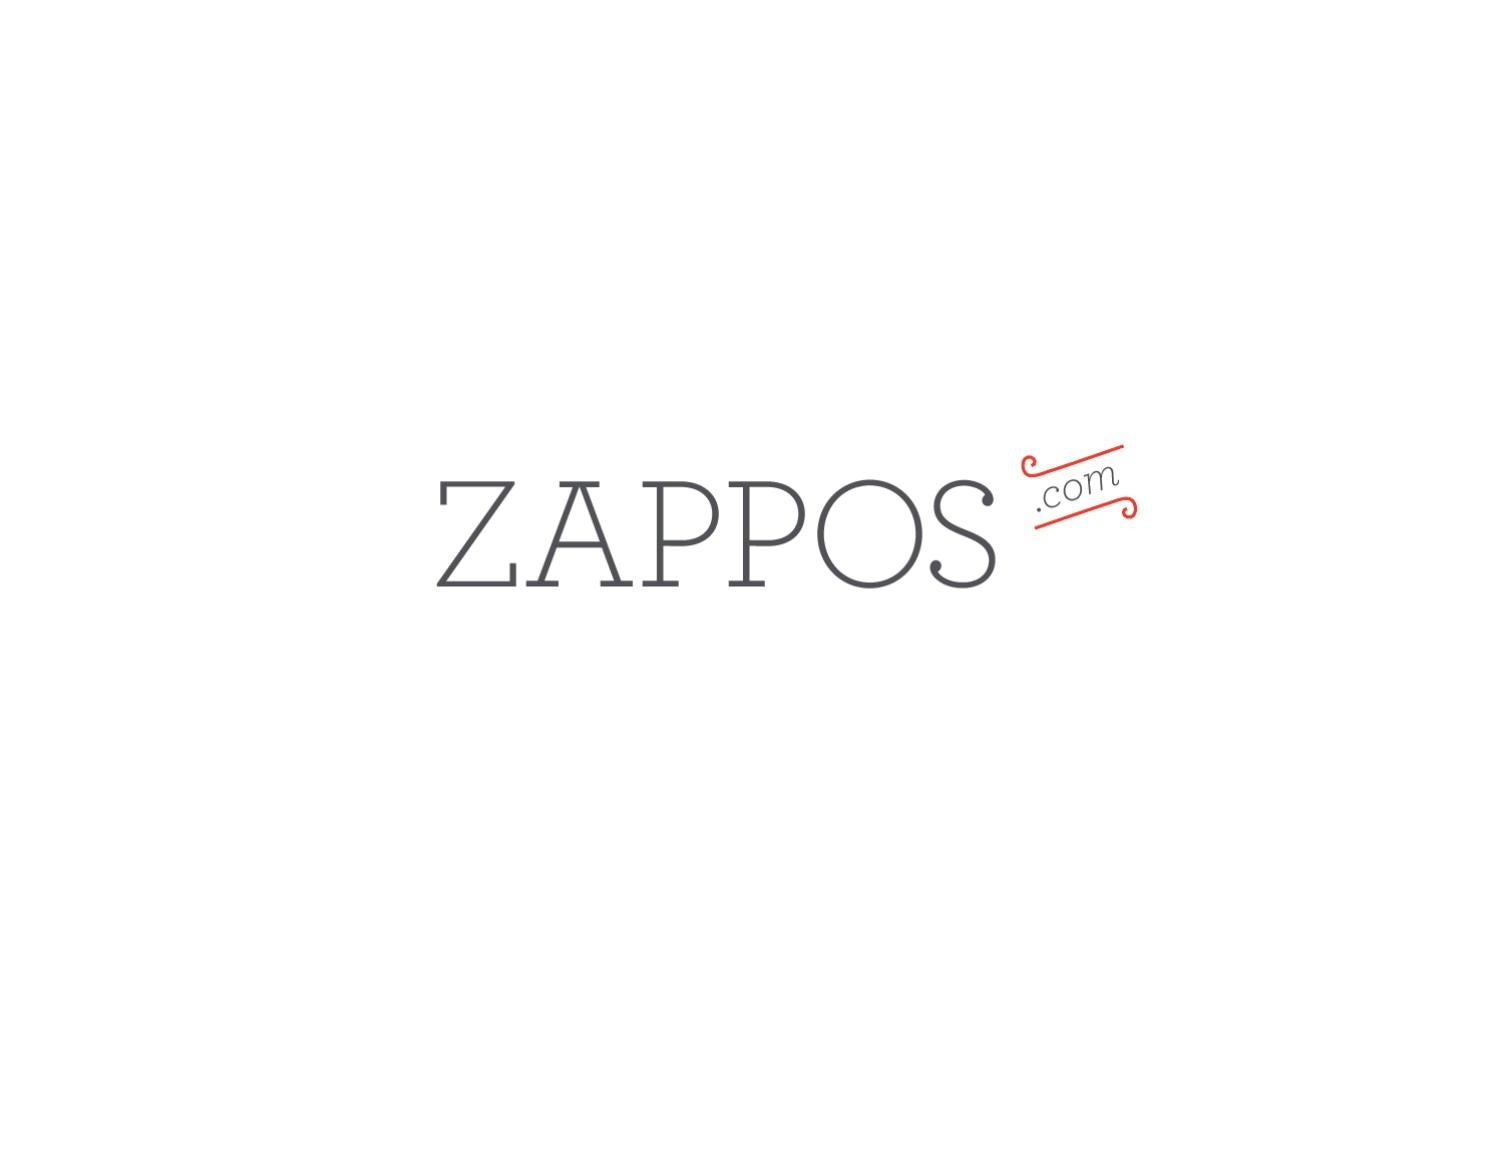 zappos order winners In november 2009, zappos was acquired by amazoncom in a deal valued at $12 billion on the day of closing tony's first book, delivering happiness, was published on june 7, 2010, and outlines his path from starting a worm farm to life at zappos.